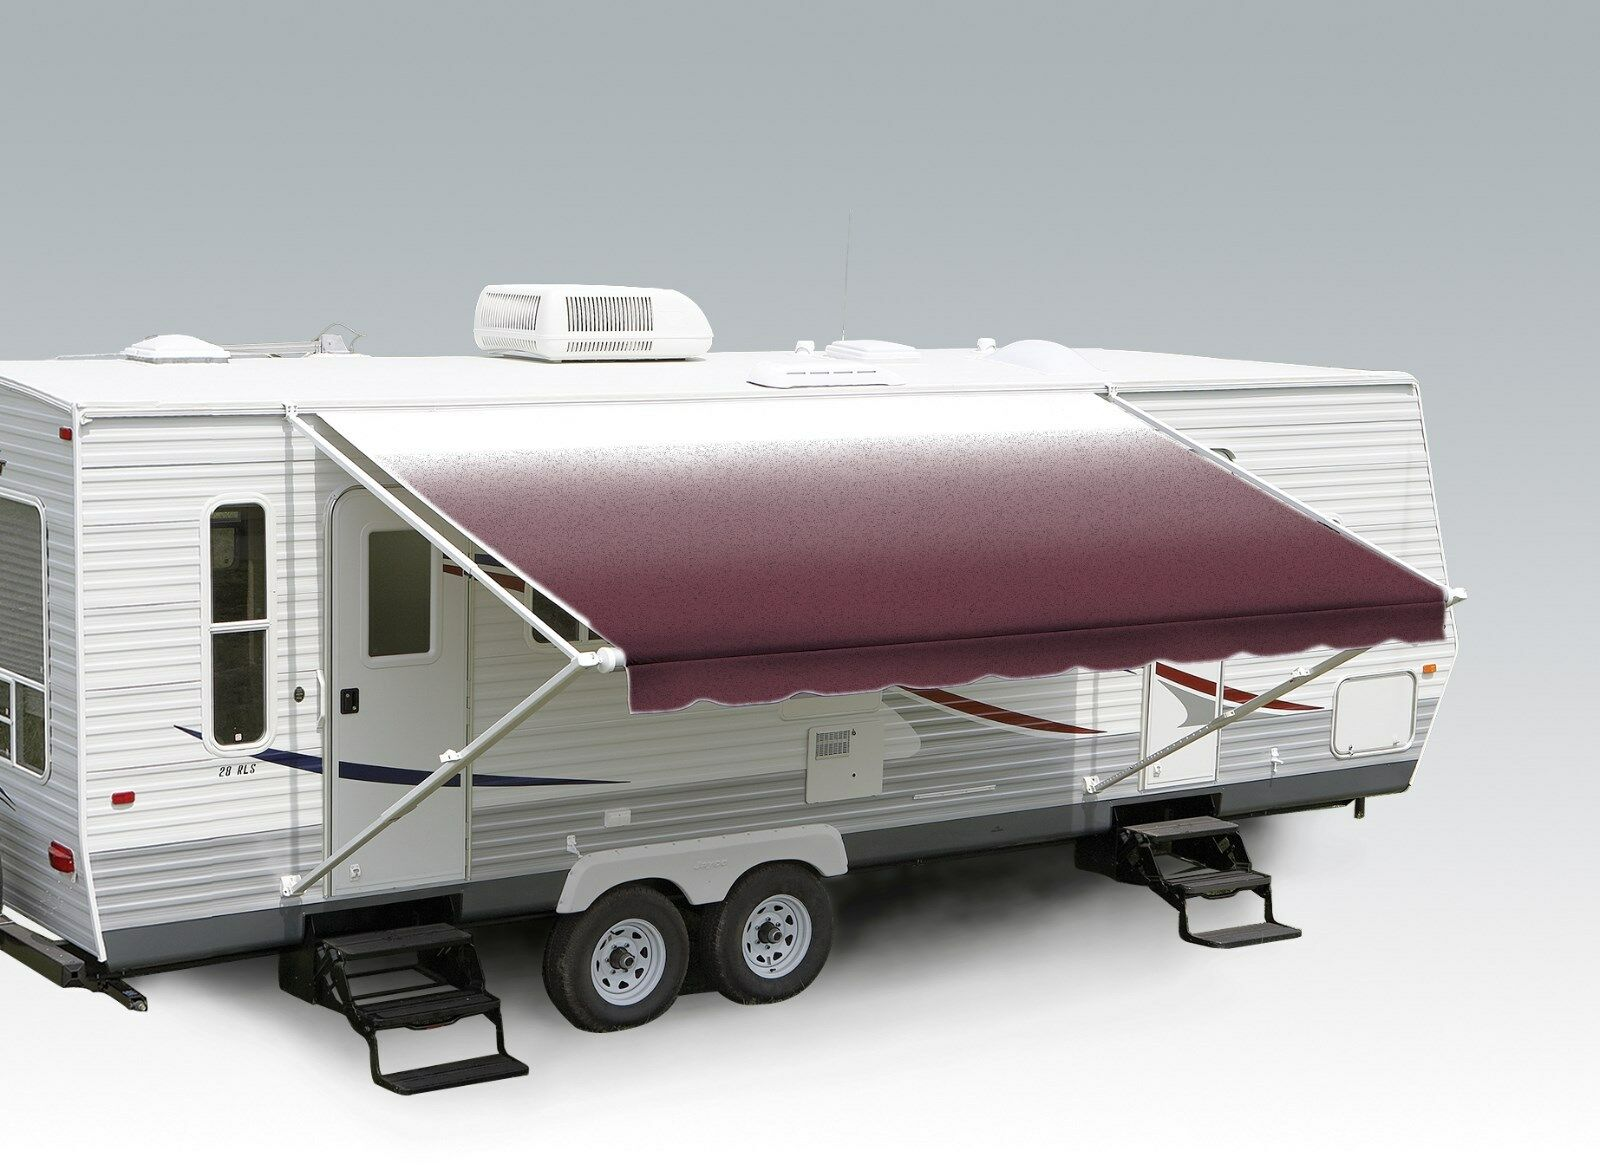 Replacement Awnings For Travel Trailers Rv Awnings Canada